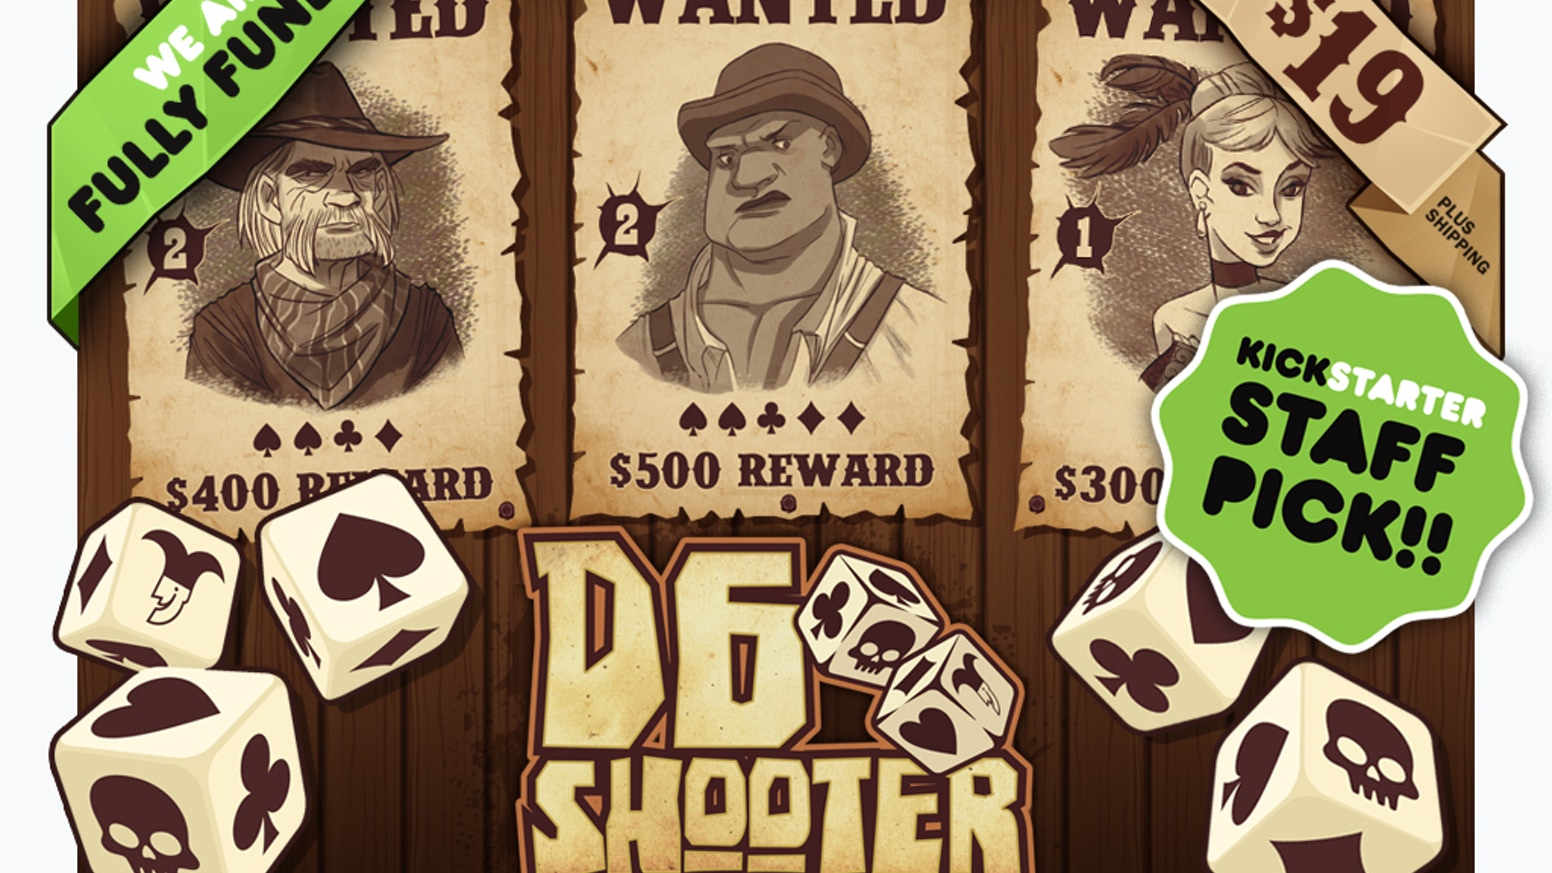 Race against other players & press your luck to wrangle the most bandits to become Marshal. Feelin' lucky? Then roll into D6 Shooter!